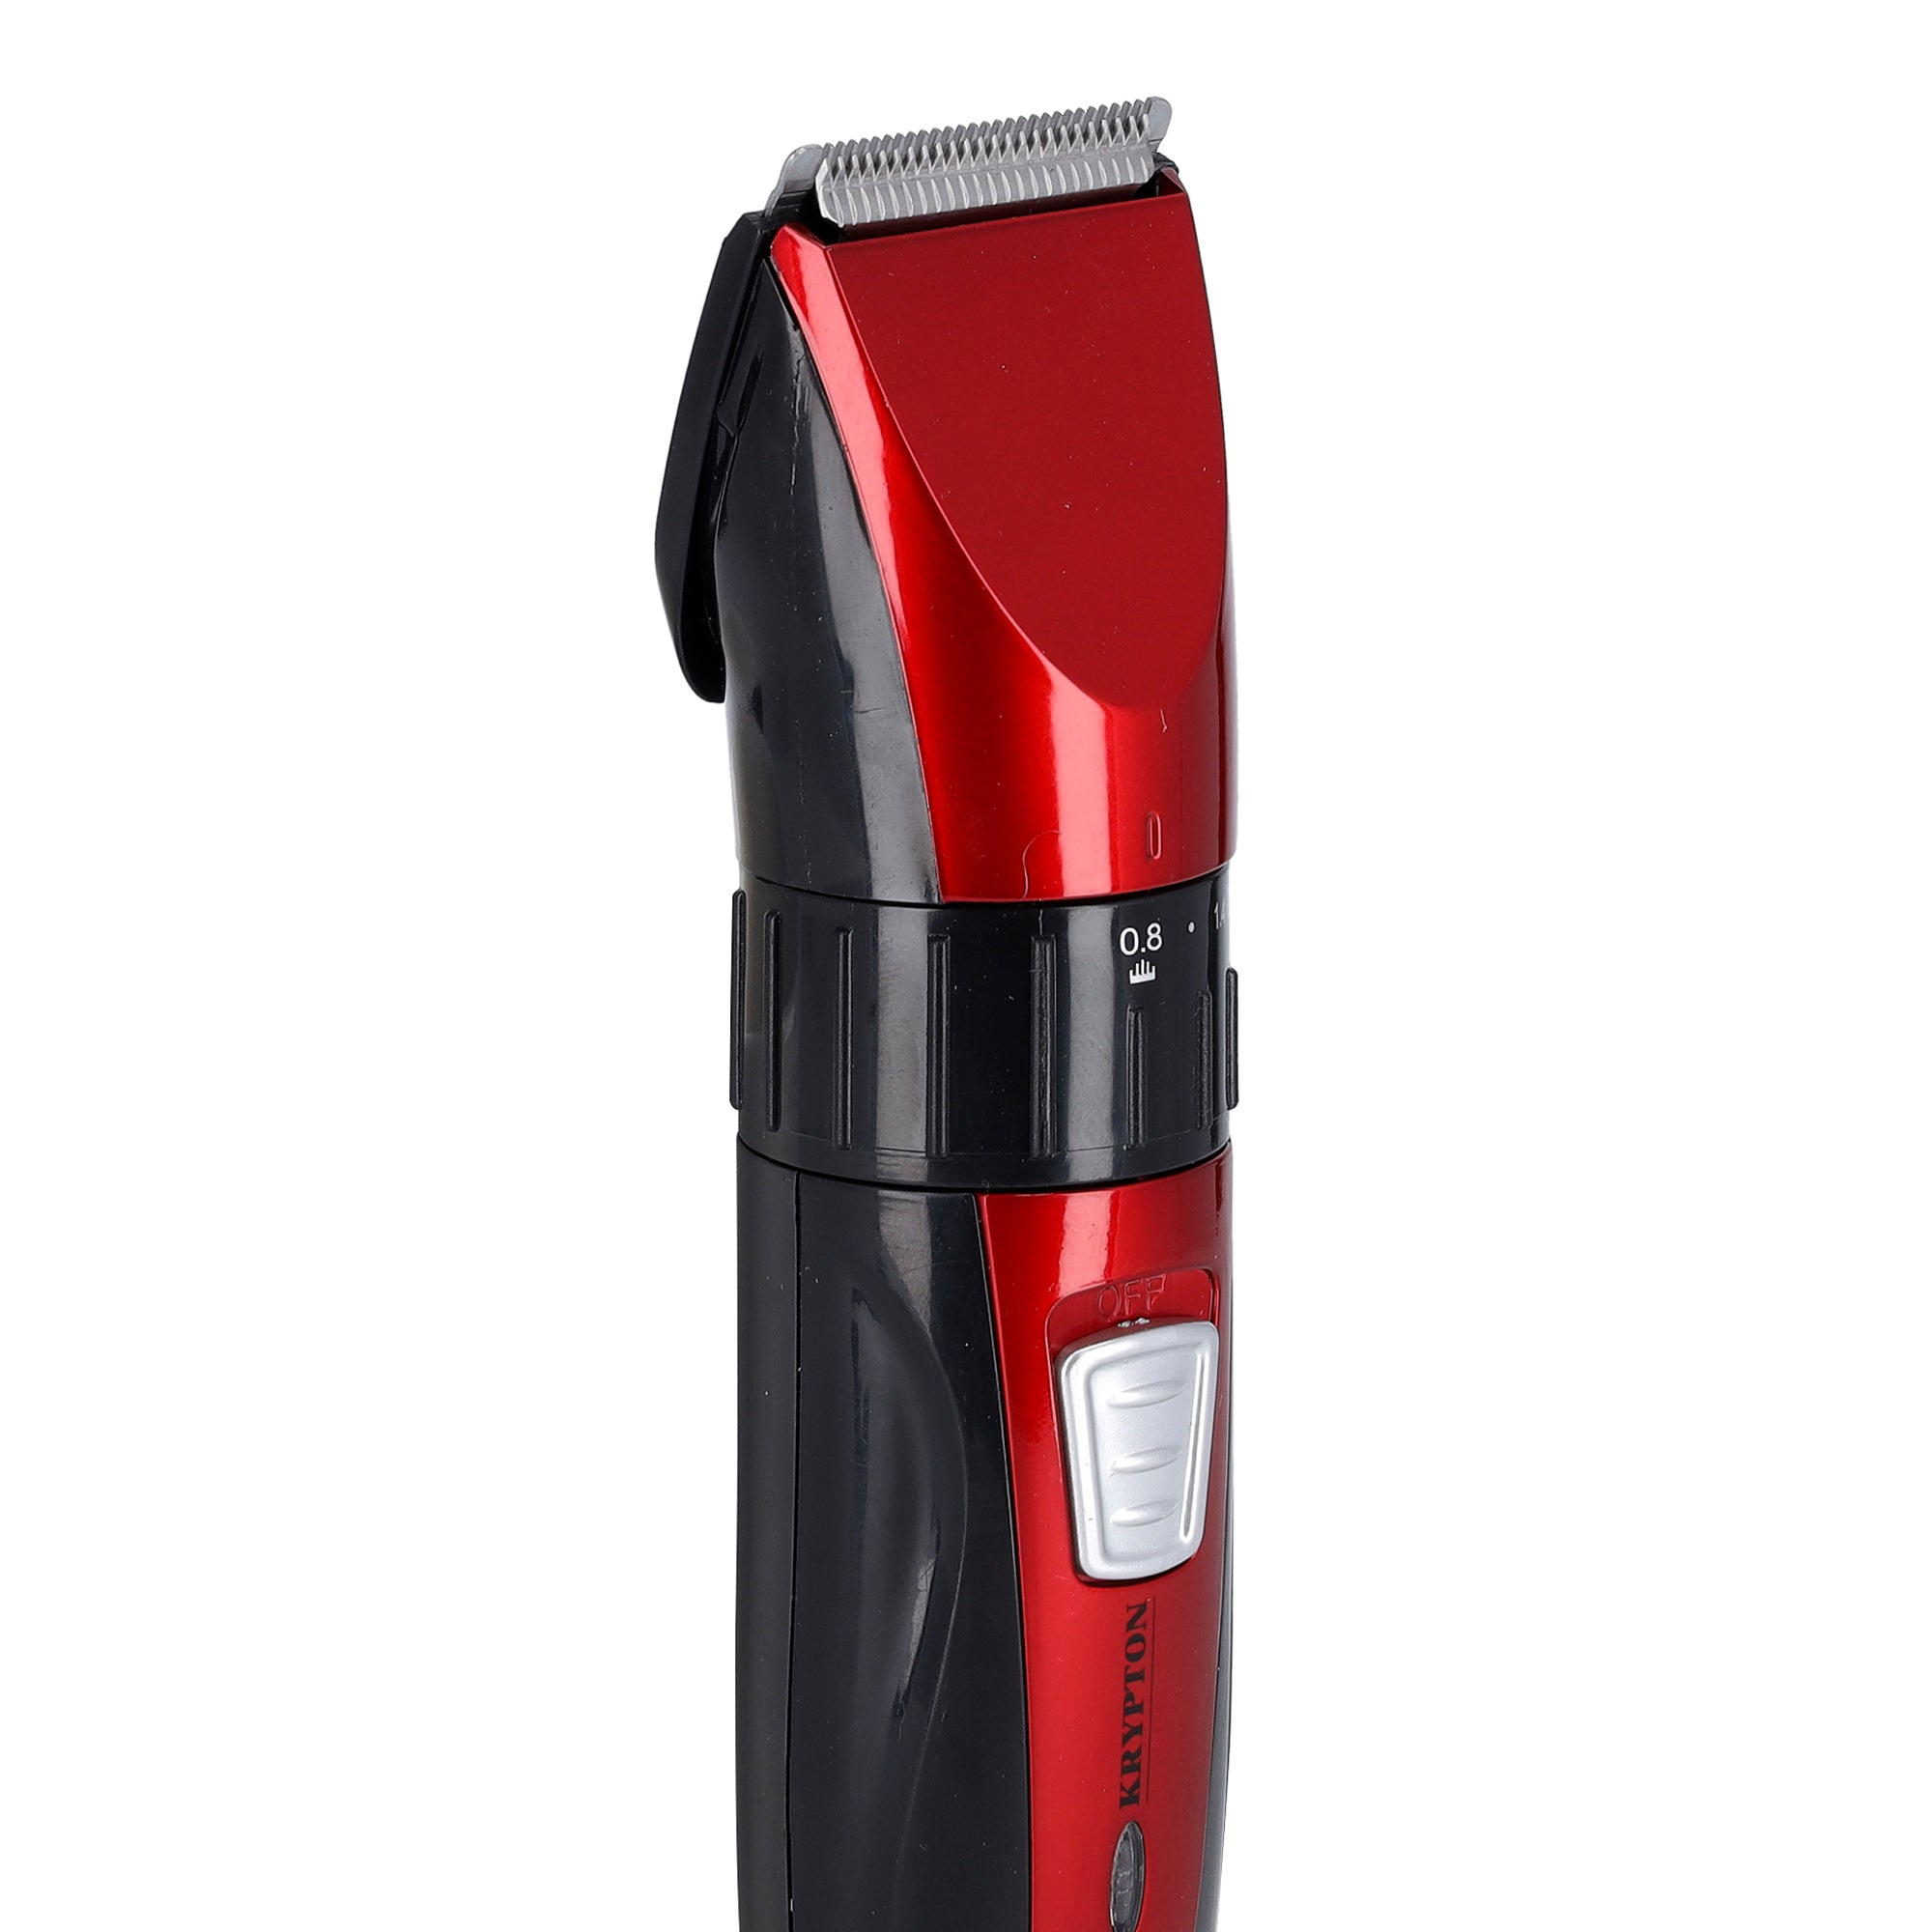 Rechargeable Hair Trimmer - Precise Beard Styler with Fine Steel Head | Indicator Lights, Cordless Trimmer, 45 Minutes Working in Single Charge